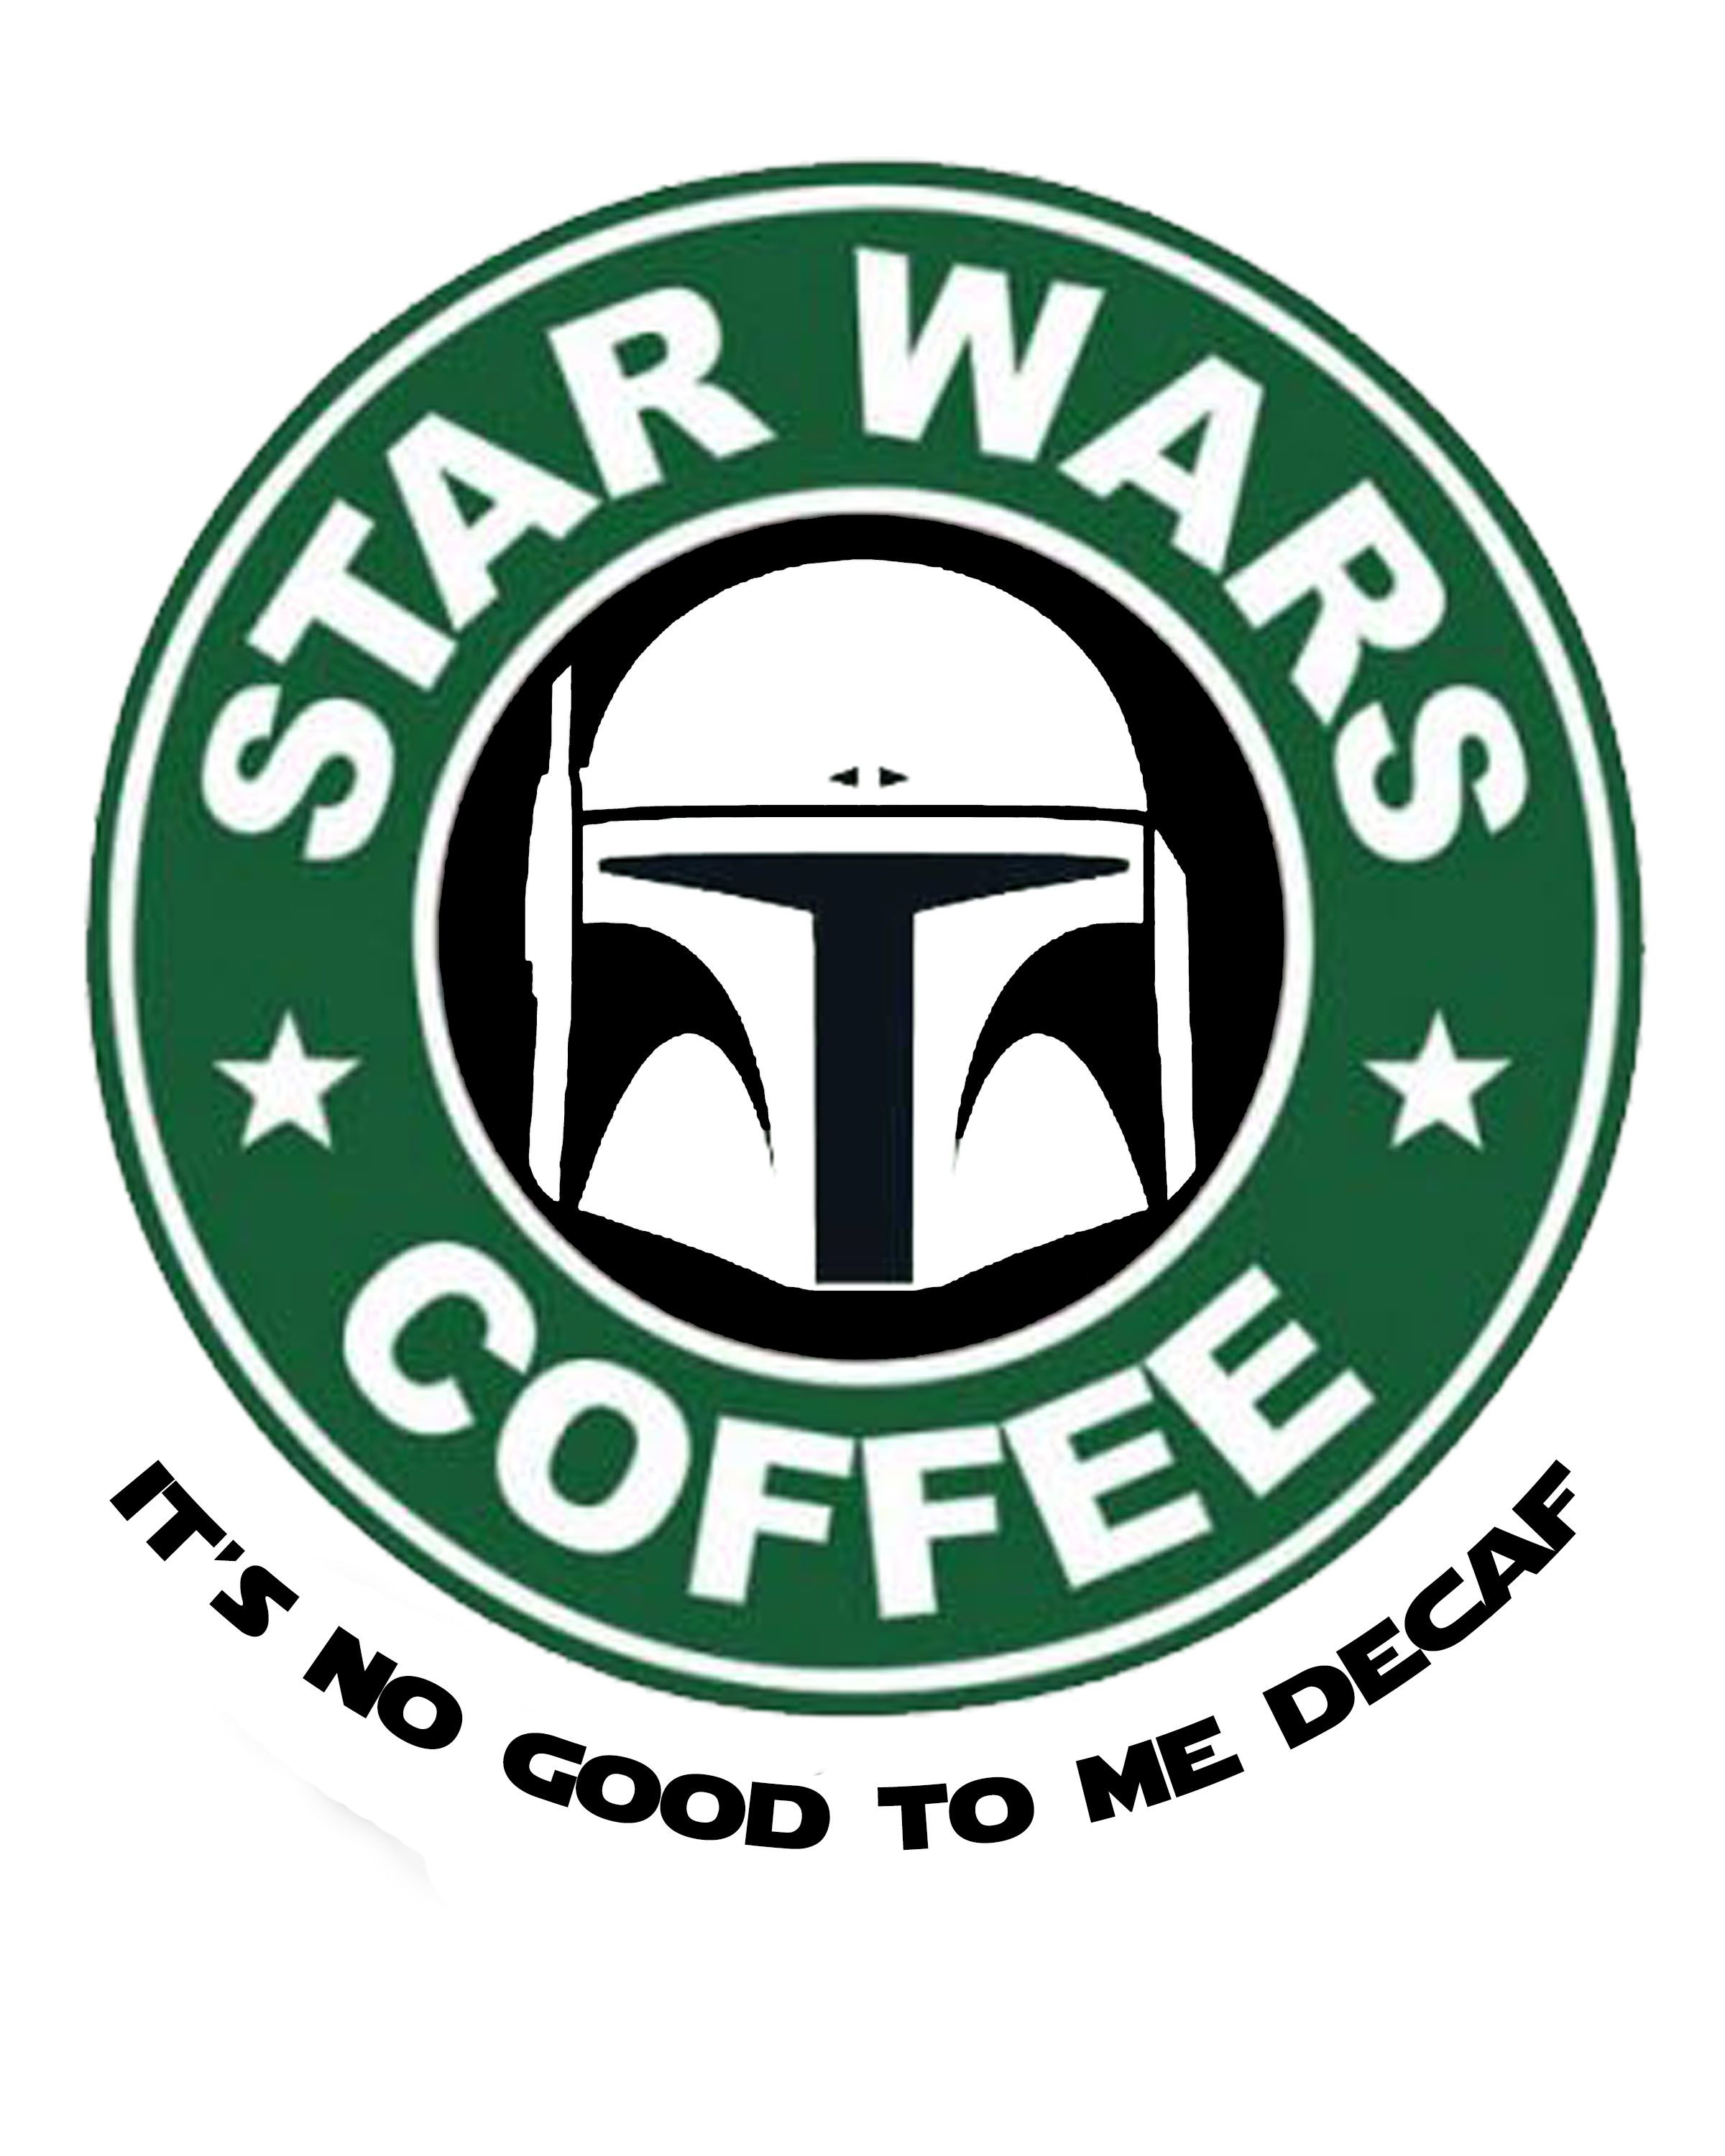 image regarding Starbucks Logo Printable referred to as Free of charge Star Wars Printables with a Espresso Topic! Starbucks